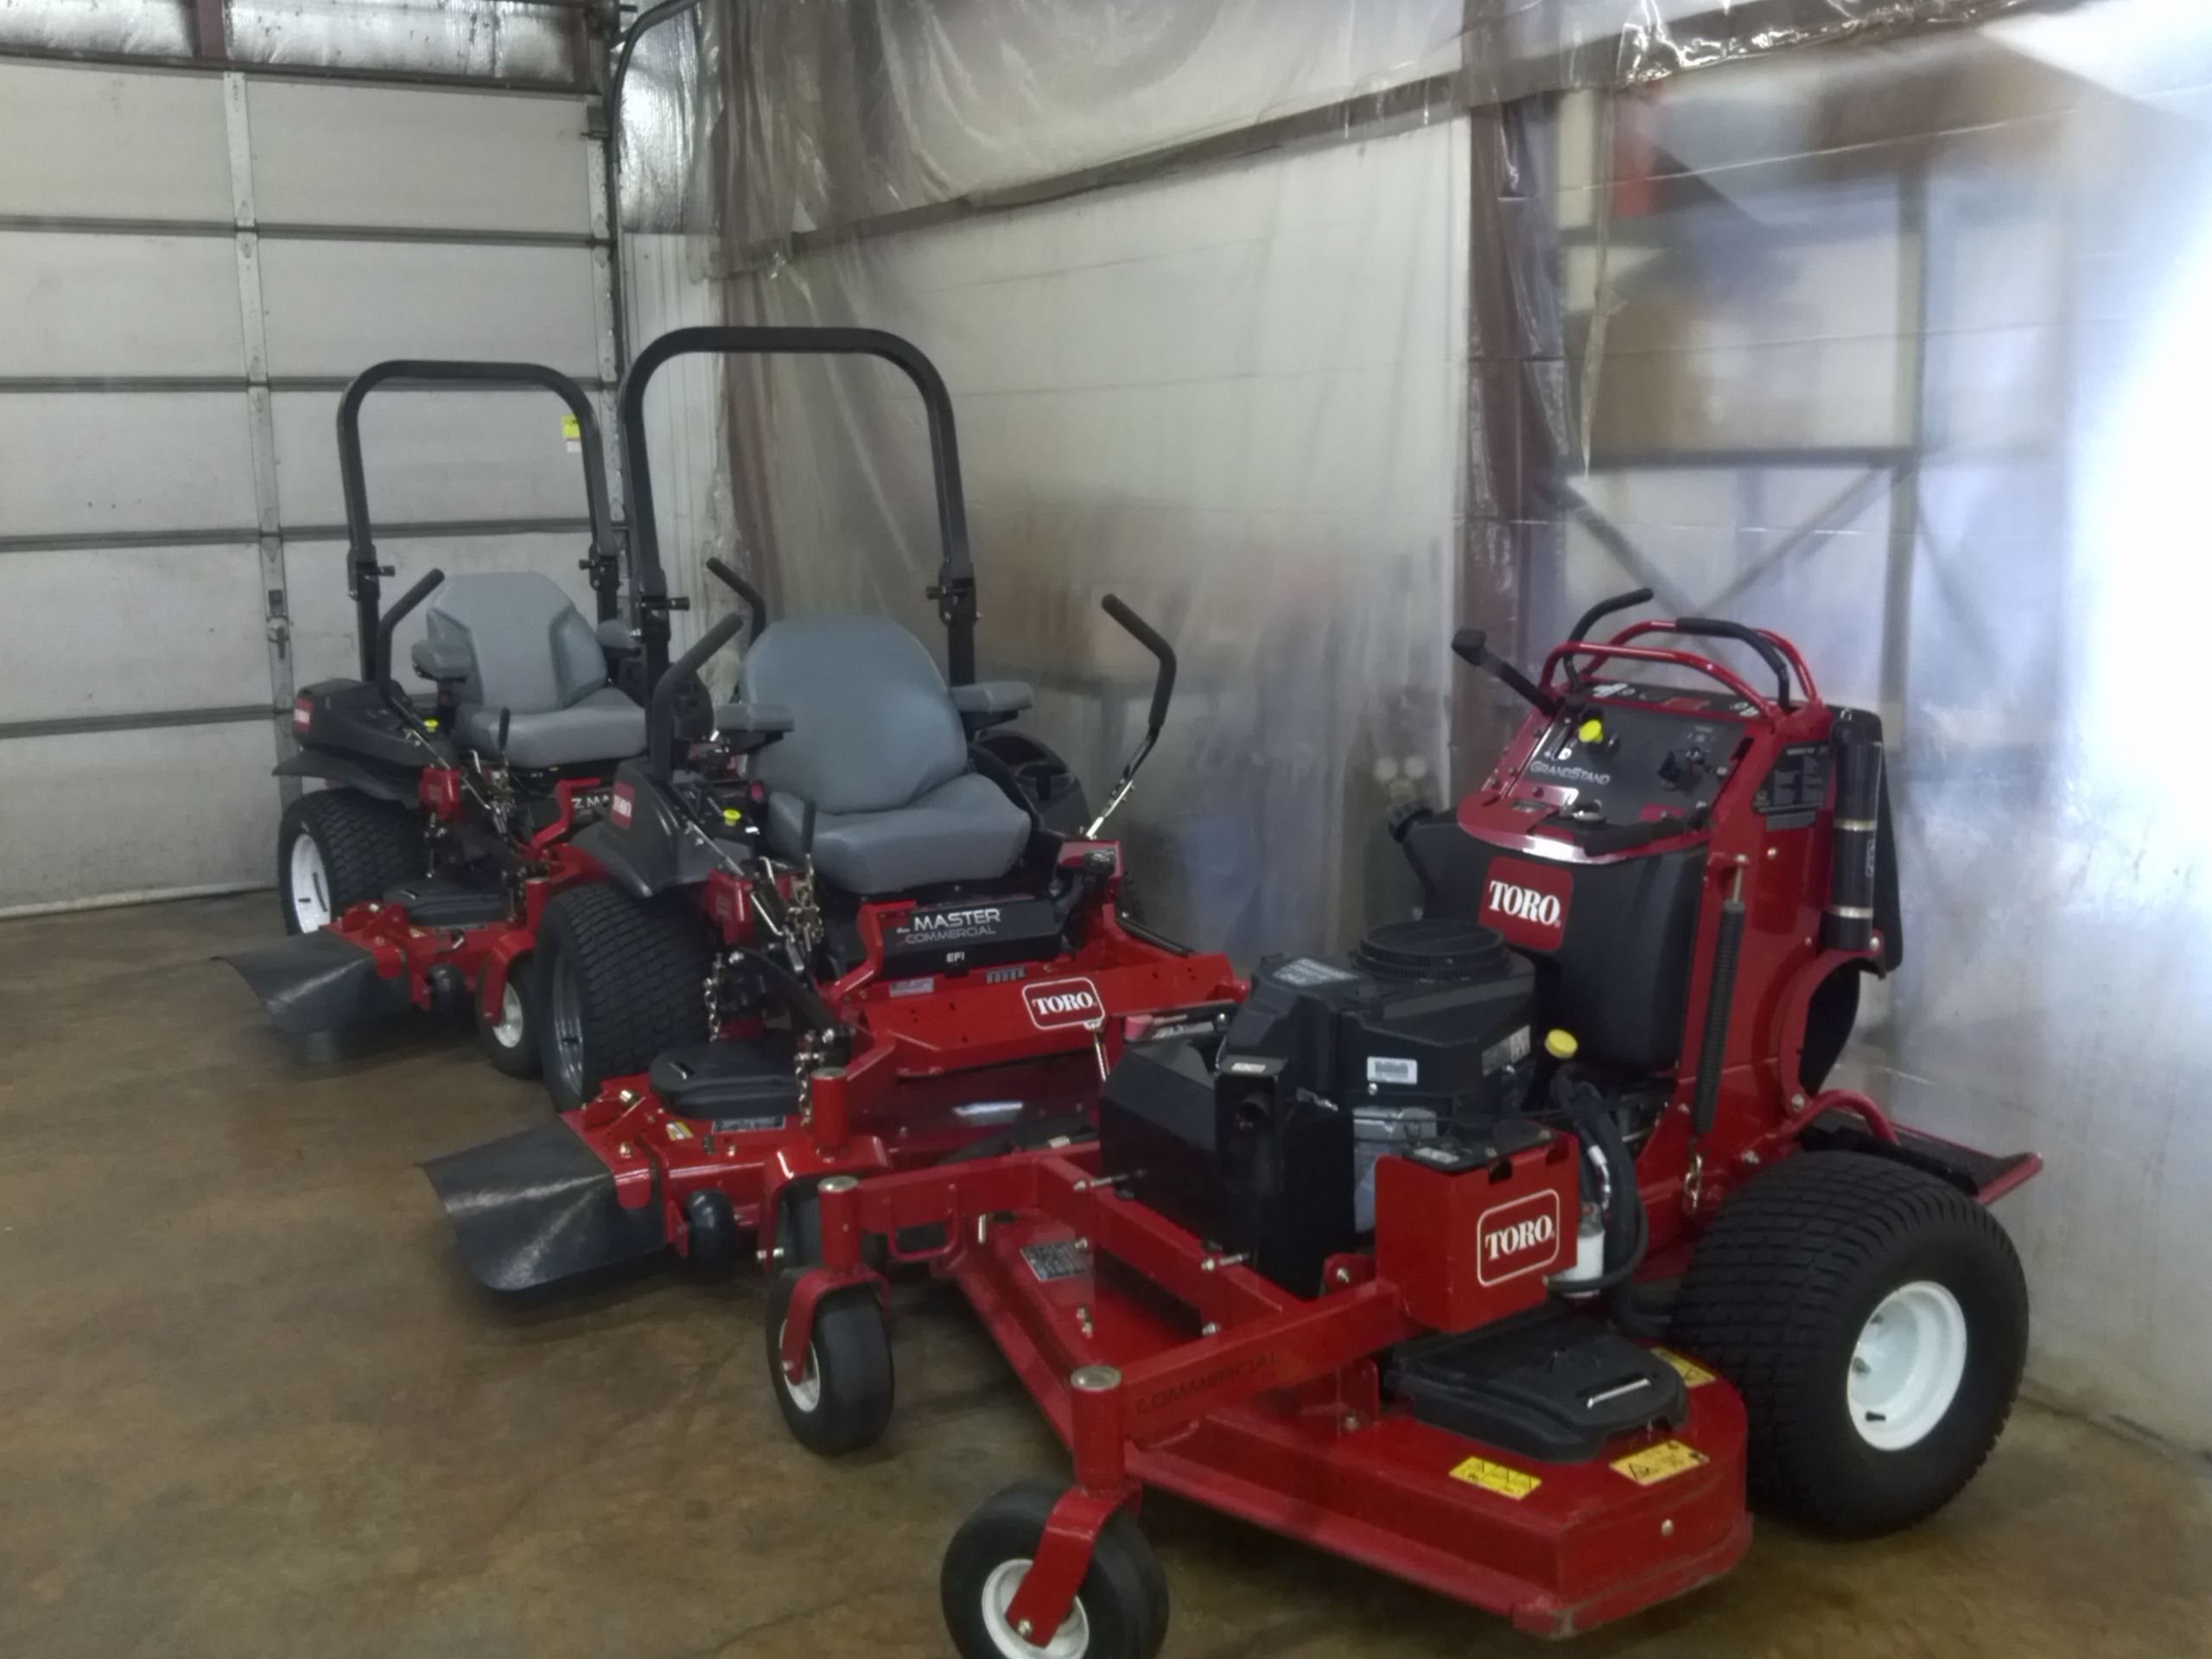 Ralph Helm Inc Lawn Equipment Center In Crystal Lake Il